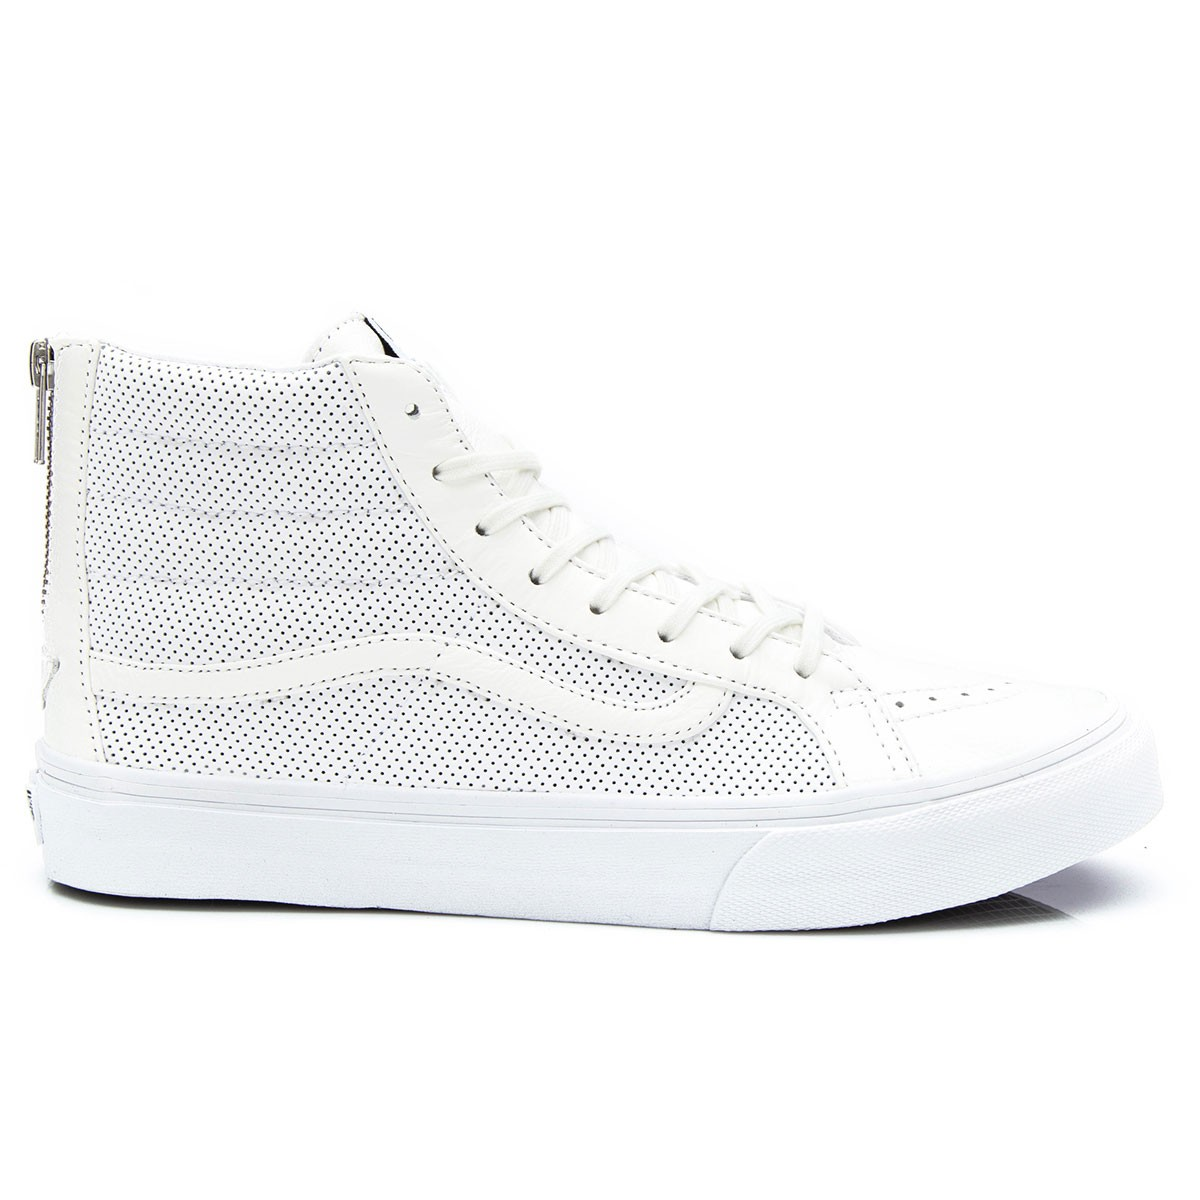 Vans SK8 HI Slim Zip Perforated Leather Shoes